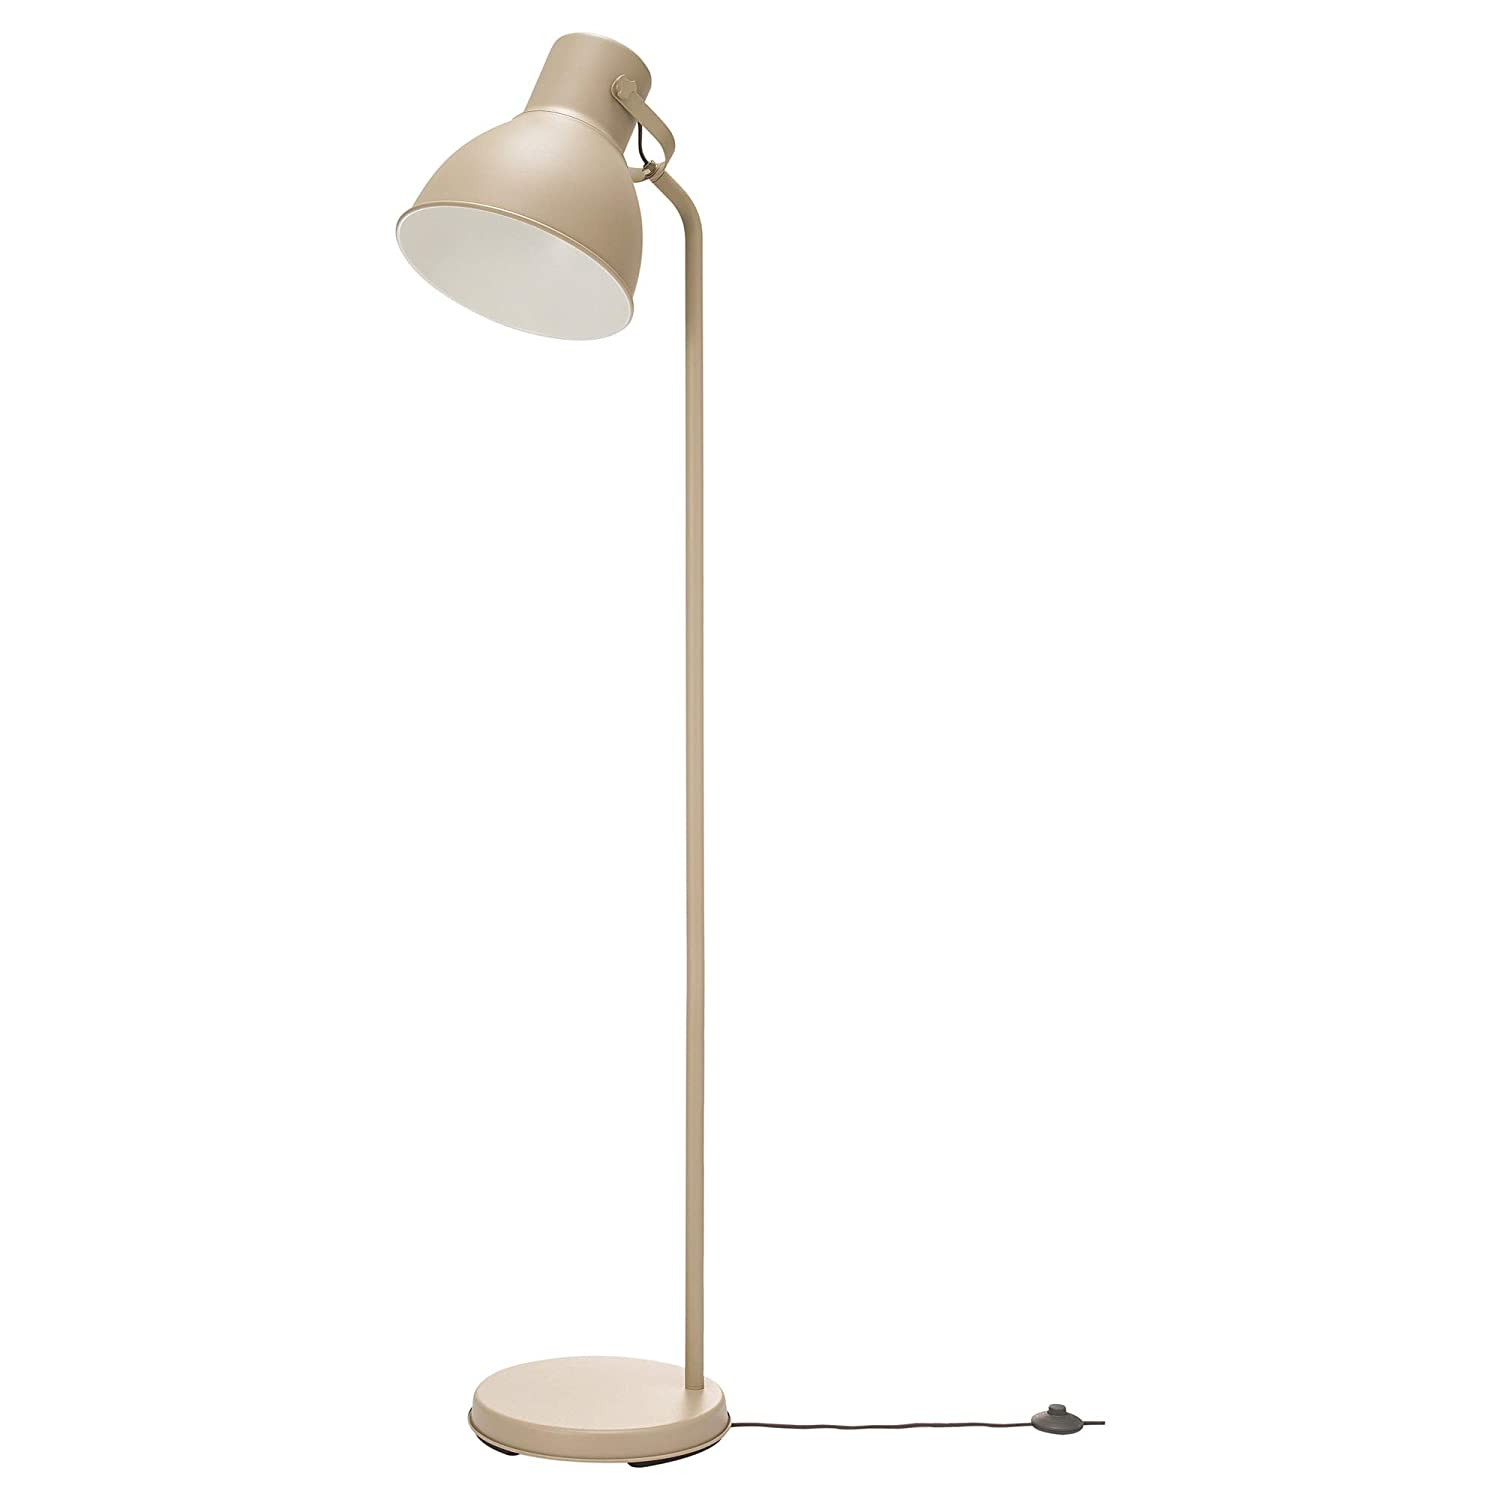 Lamp 504 102 Led Floor Ikea BulbBeige Hektar 31 With Oym0Nnv8w